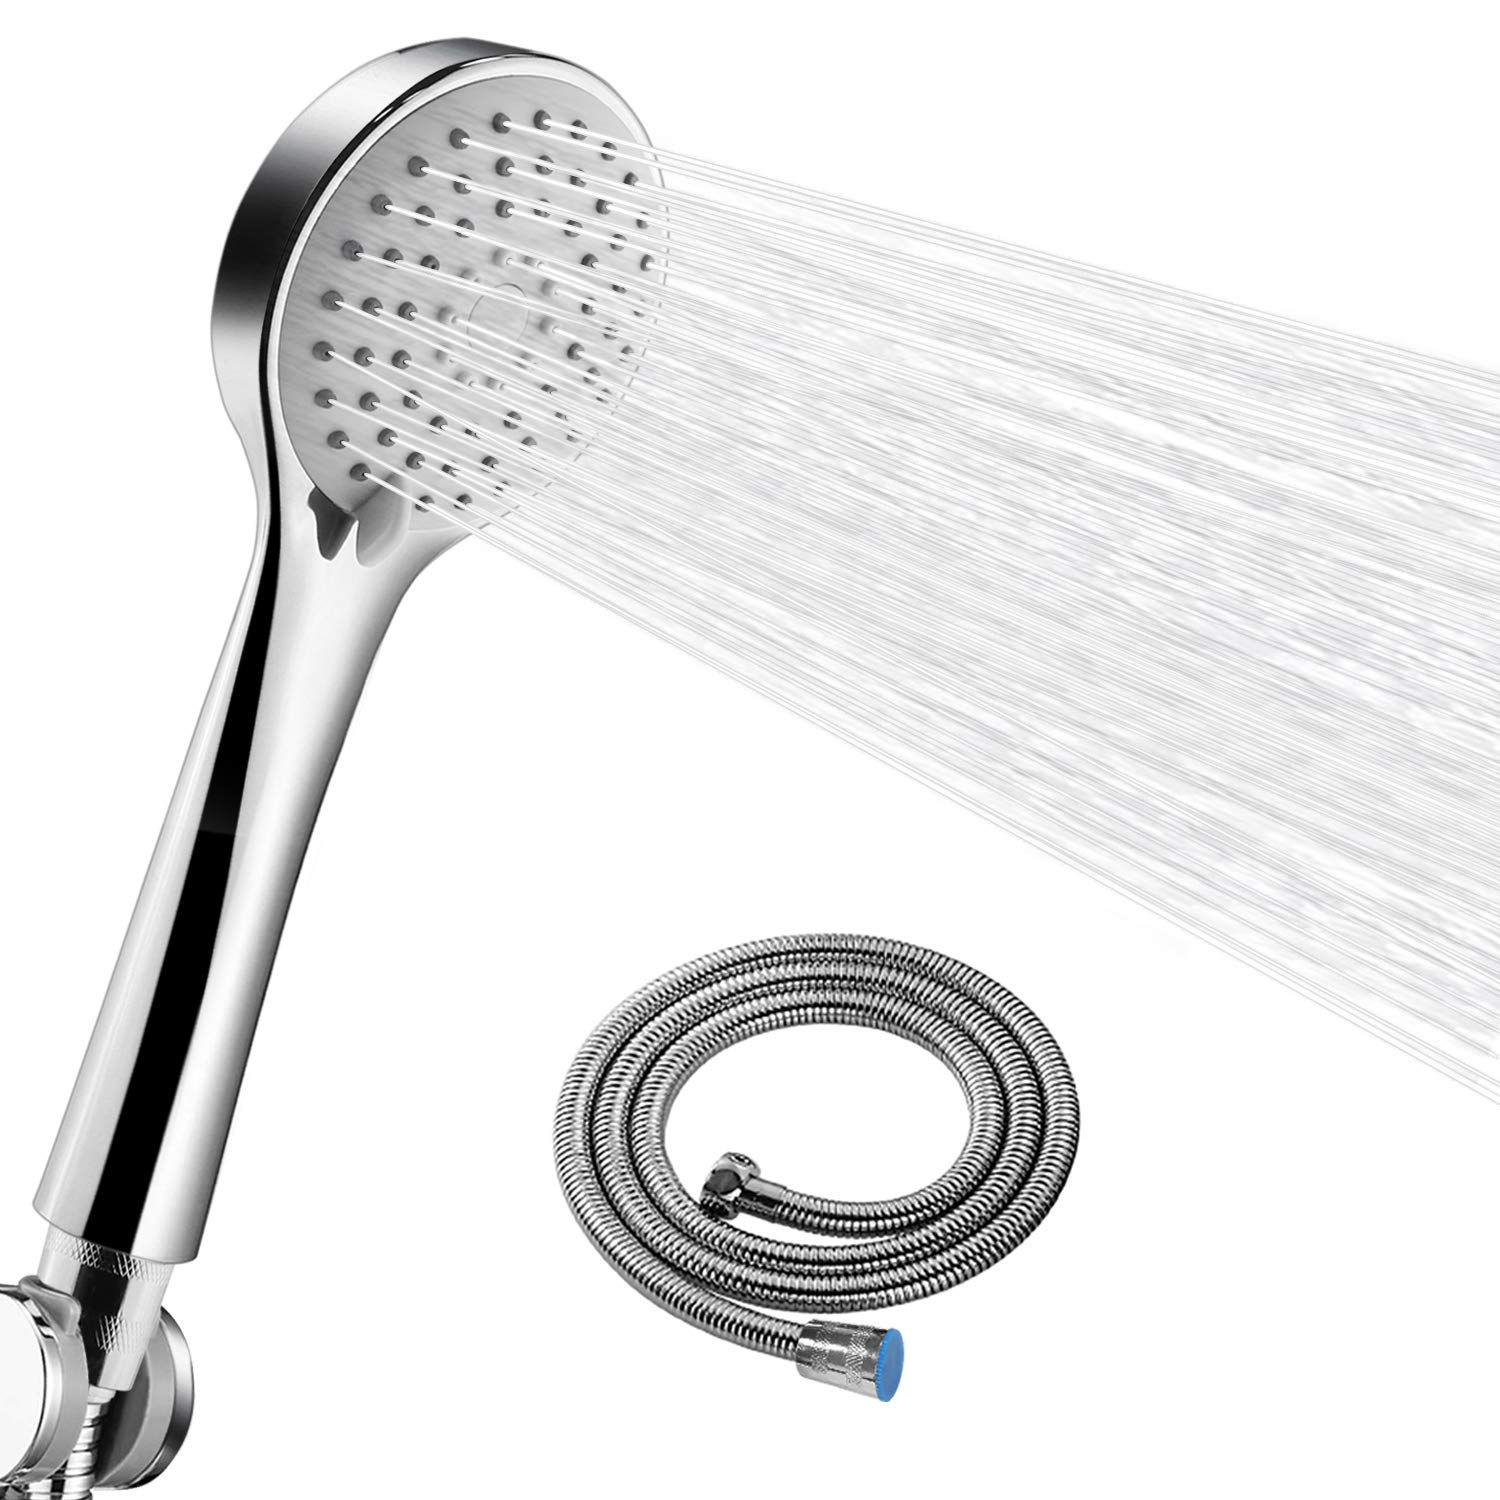 Fantastic shower head